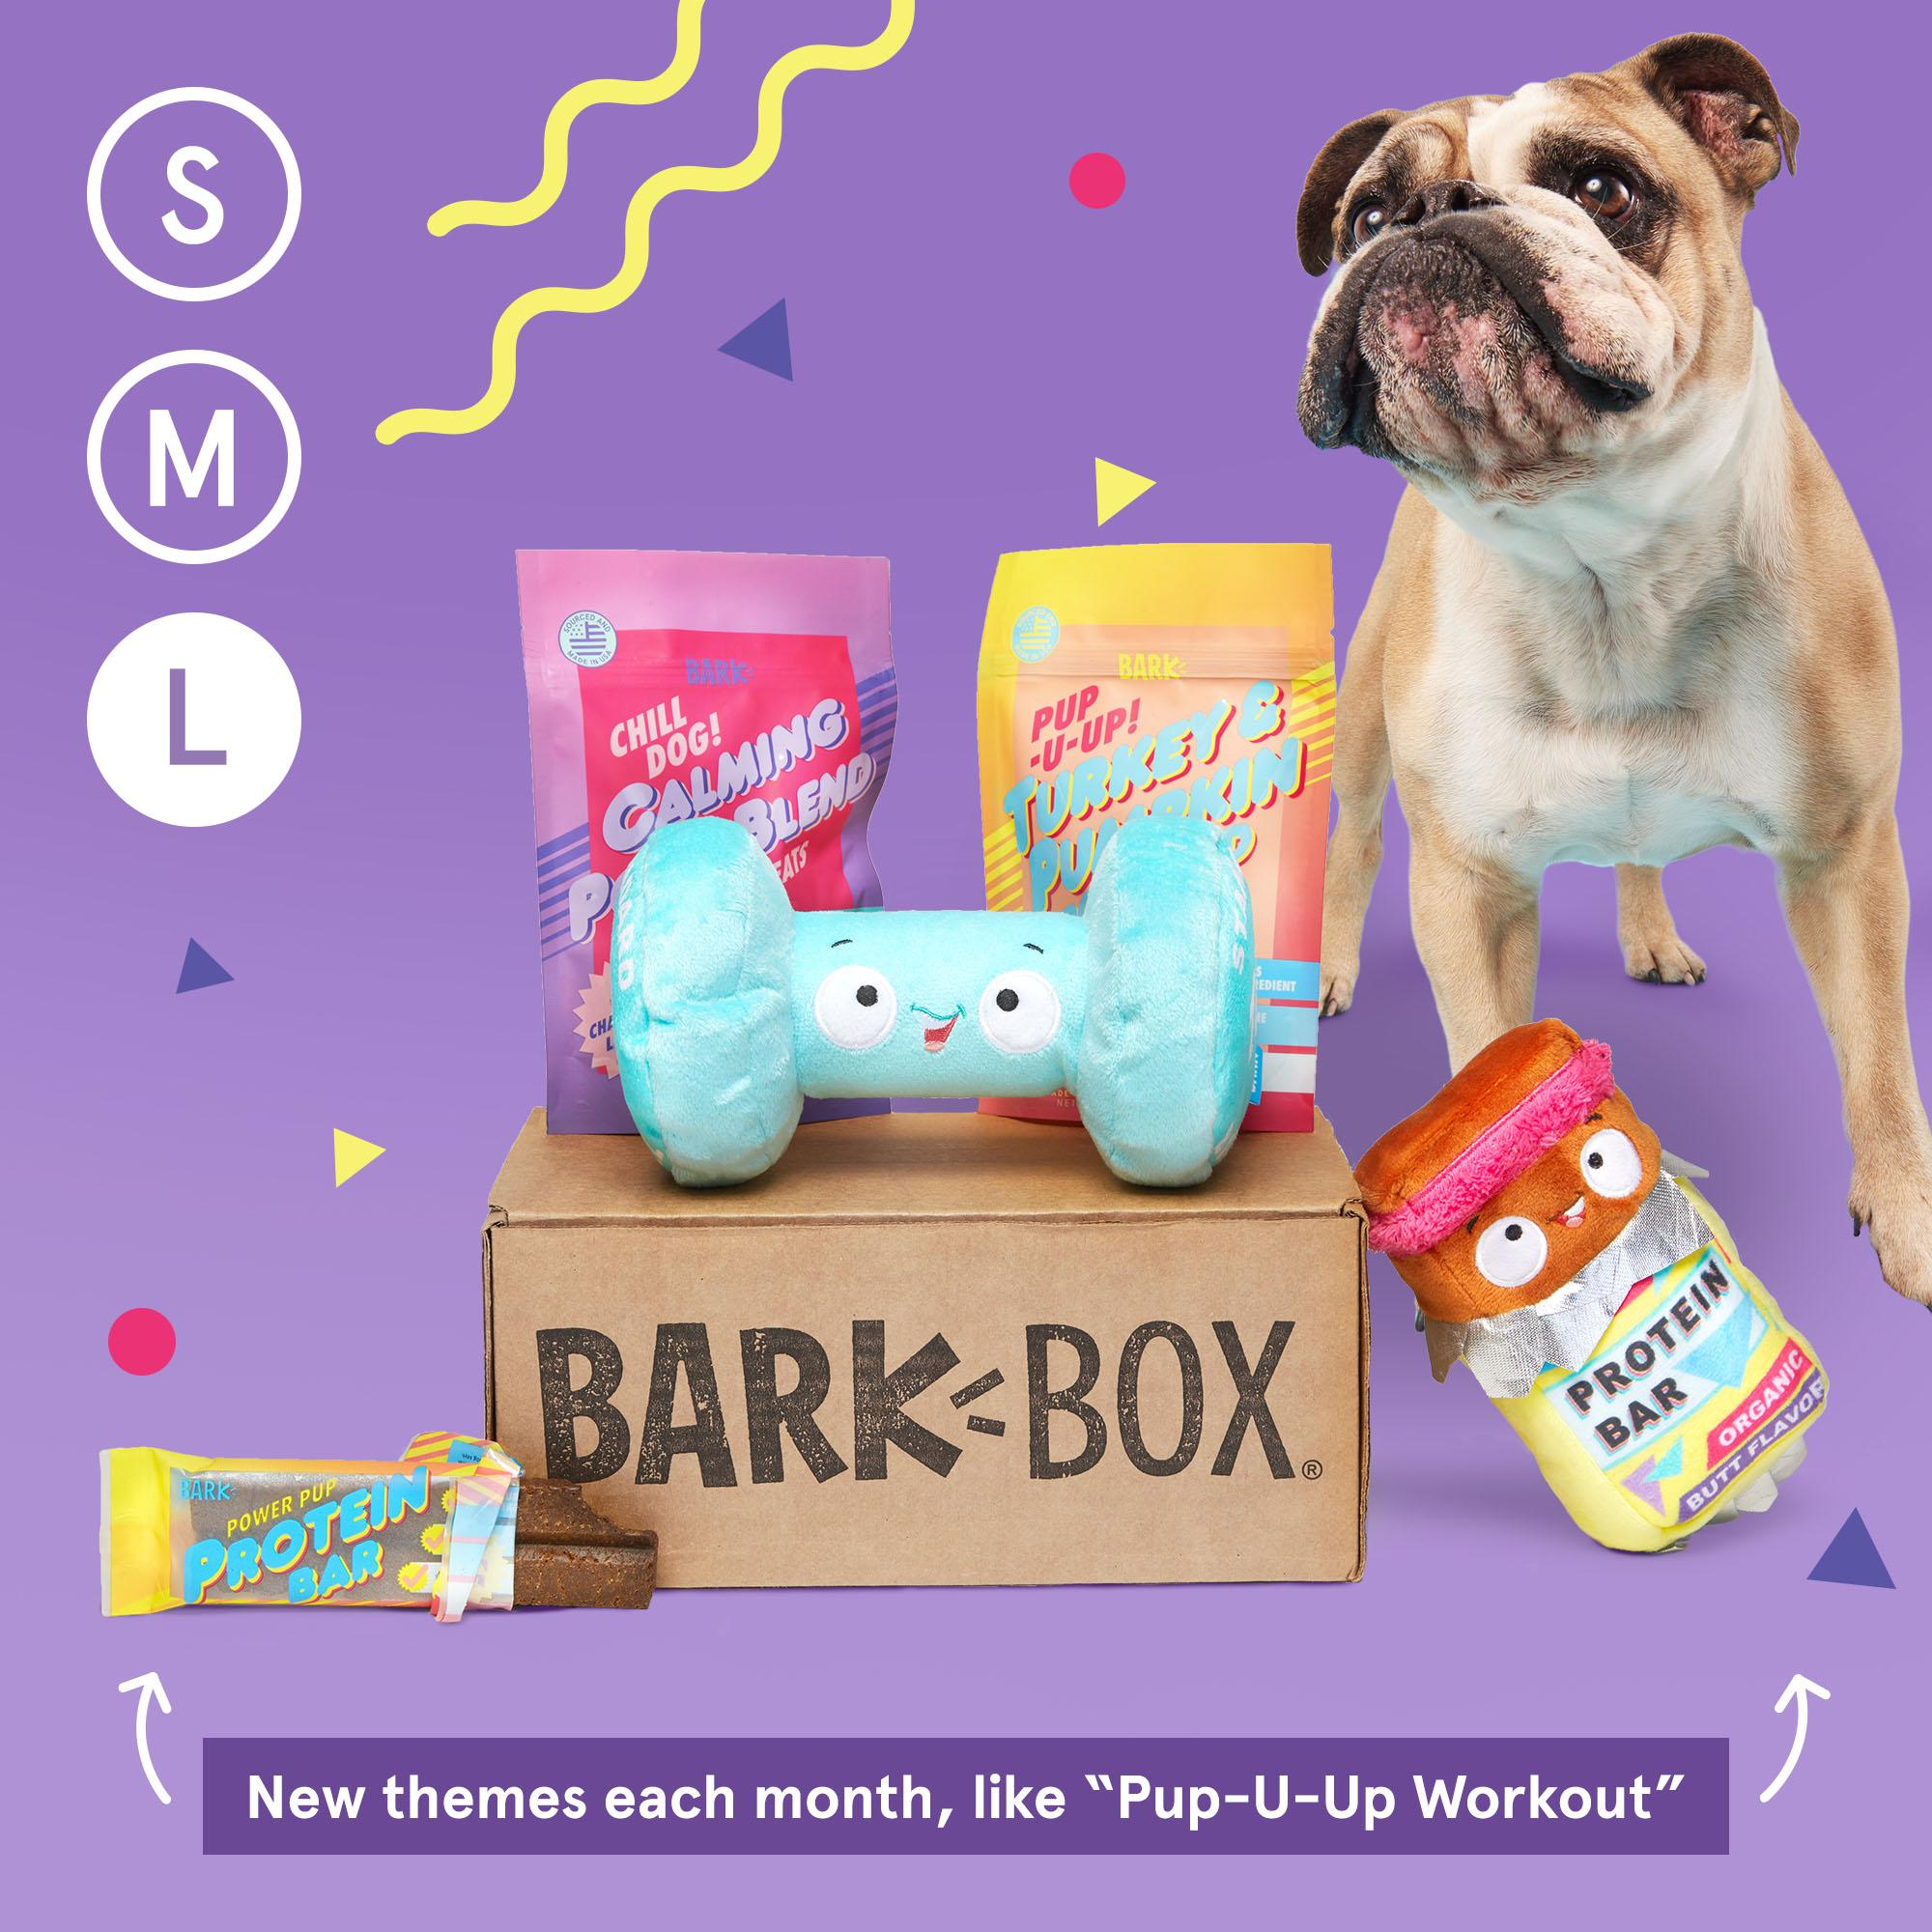 BarkBox Subscription - The Best Toys & Treats For Your Dog Only $15.08 (Was $29) **Today Only**